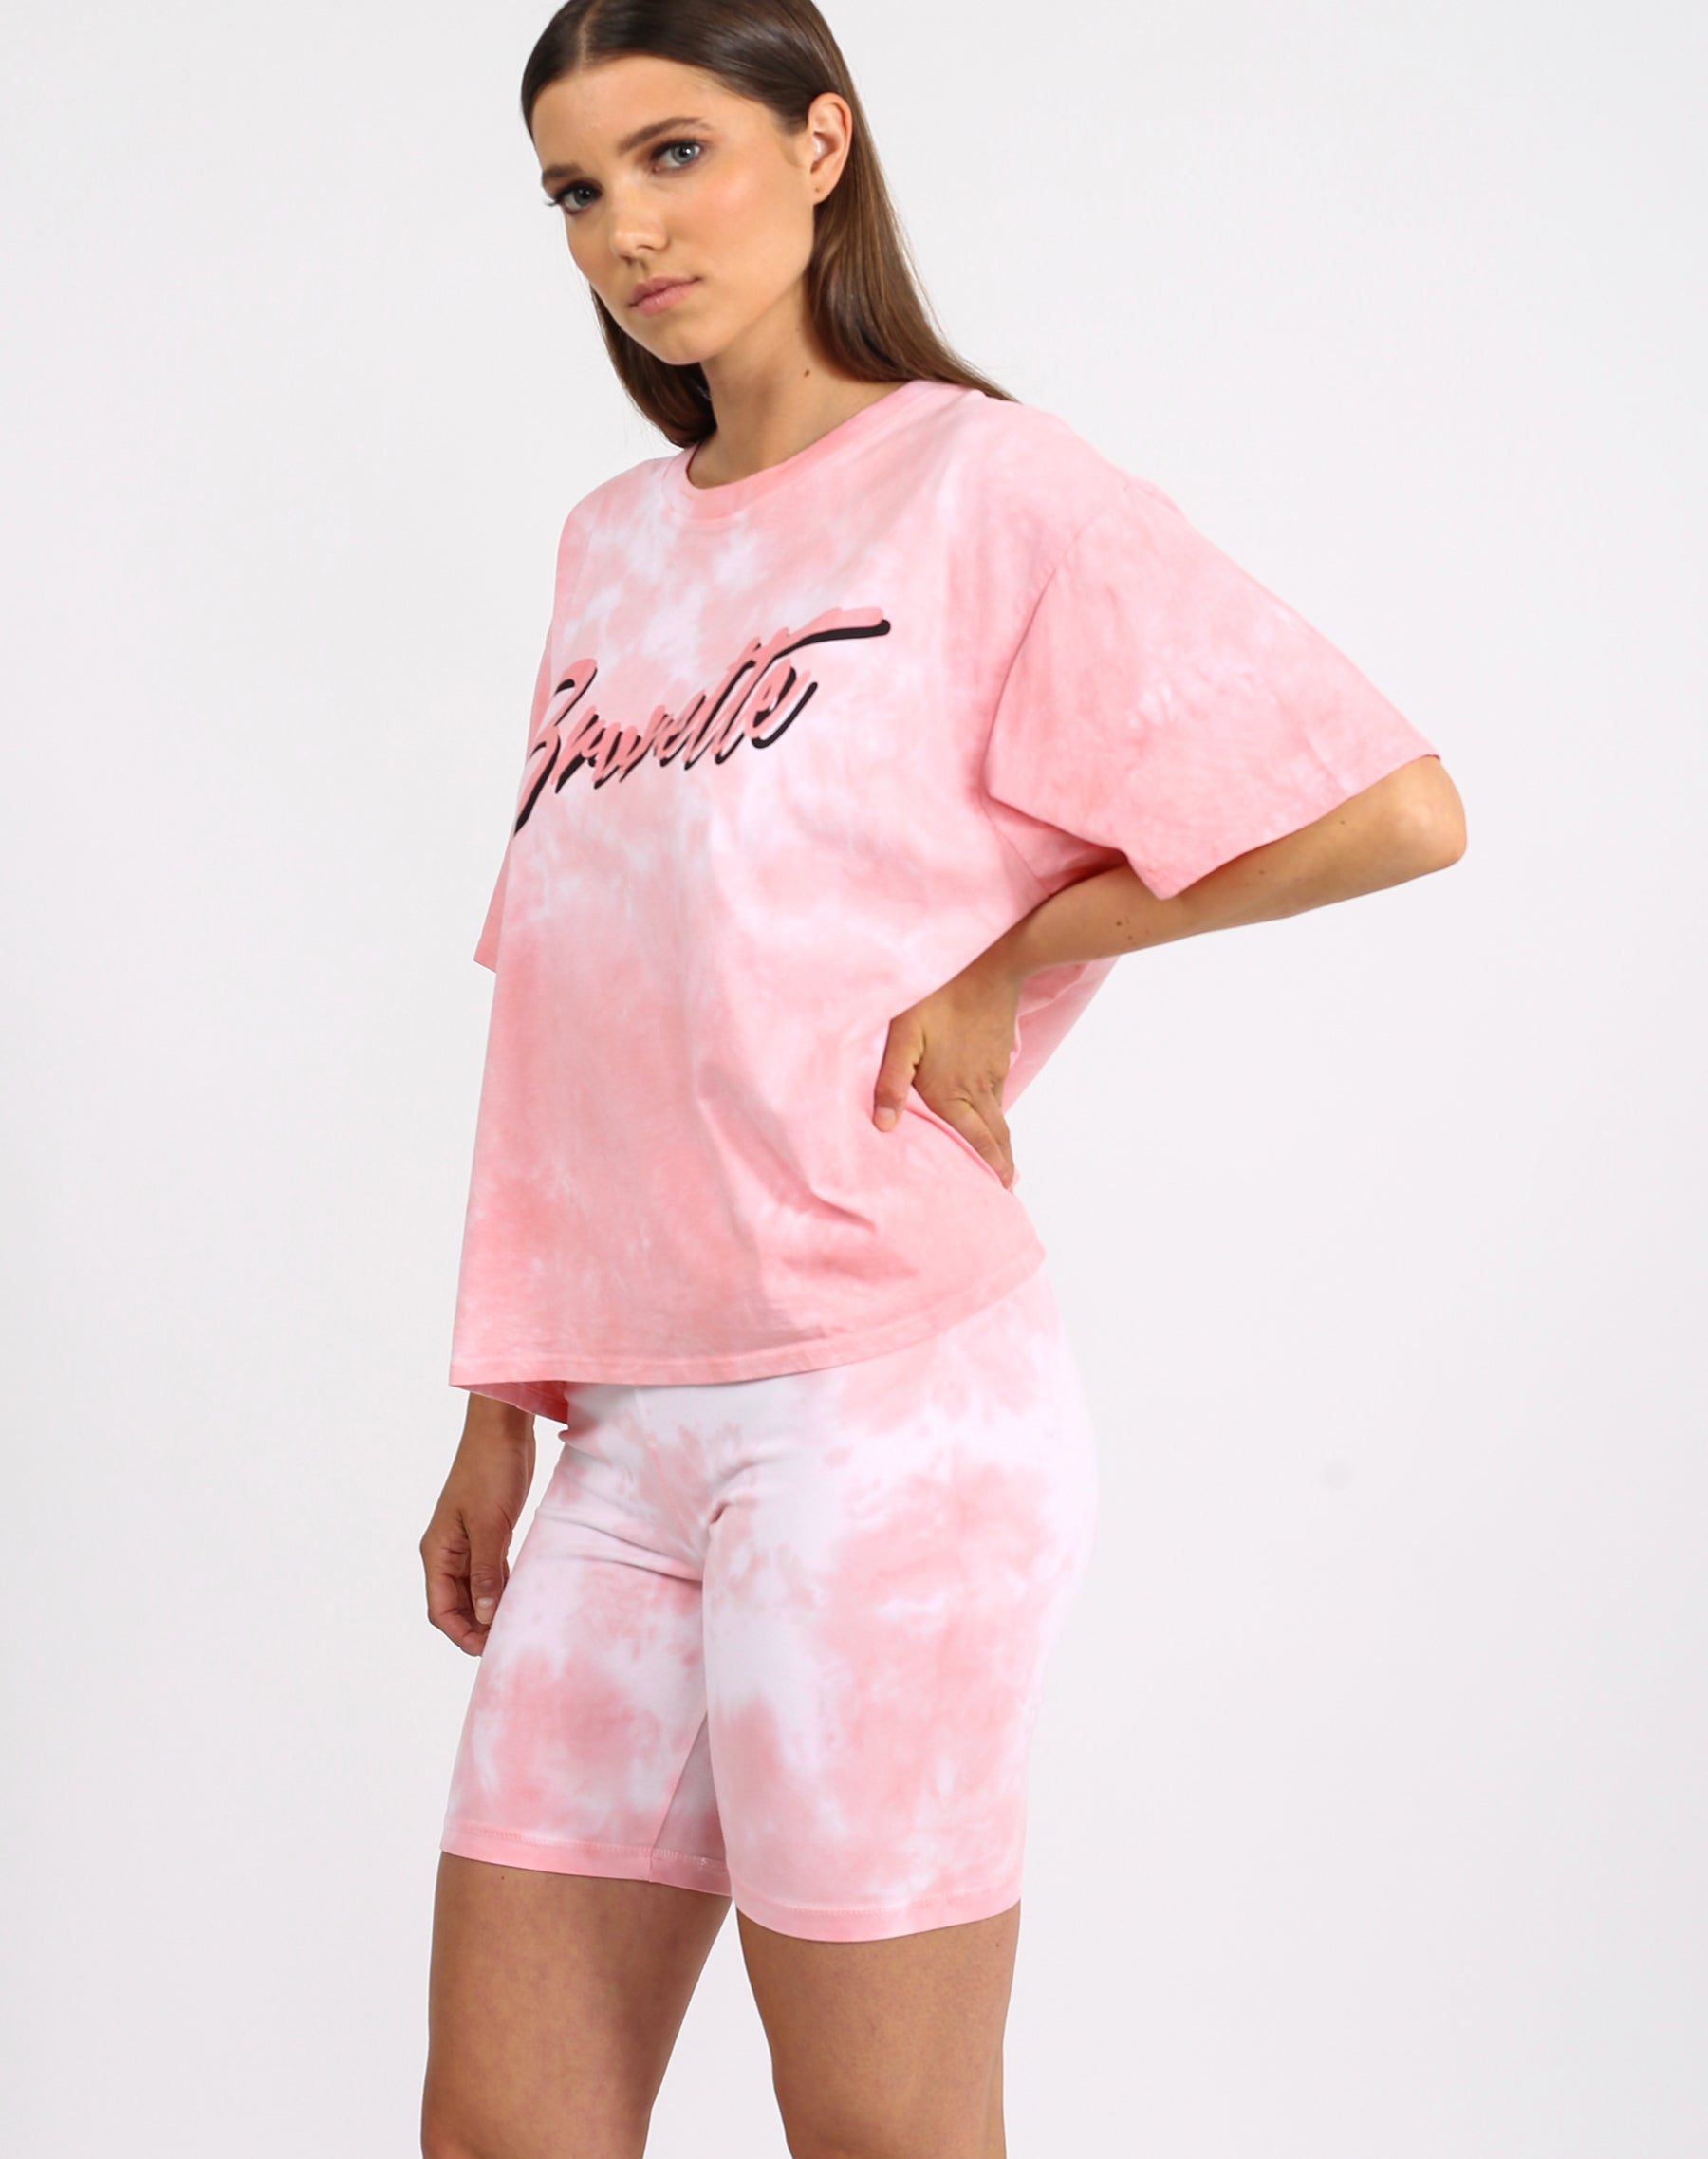 This is a photo of a model wearing the brunette boxy retro tee  in pink marble by Brunette the Label x Juicy Couture.